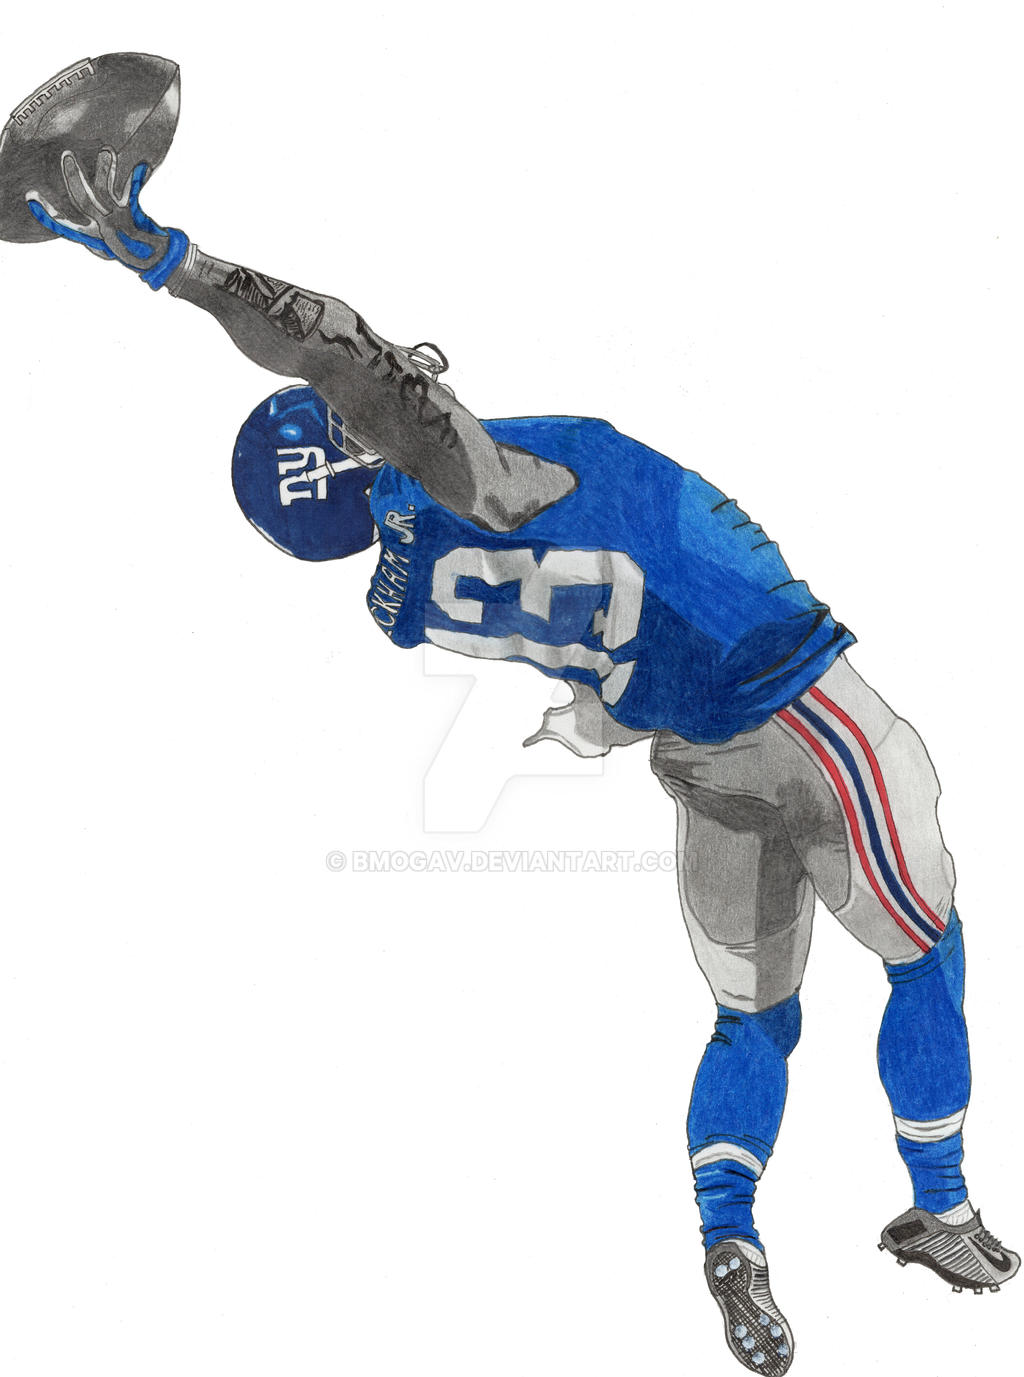 odell chat Samual l jackon's character, odell, drank them a lot in the hit movie, jackie brown hey bartender , let me get an odell #odel #vodka #oj #samual l #odizzle.